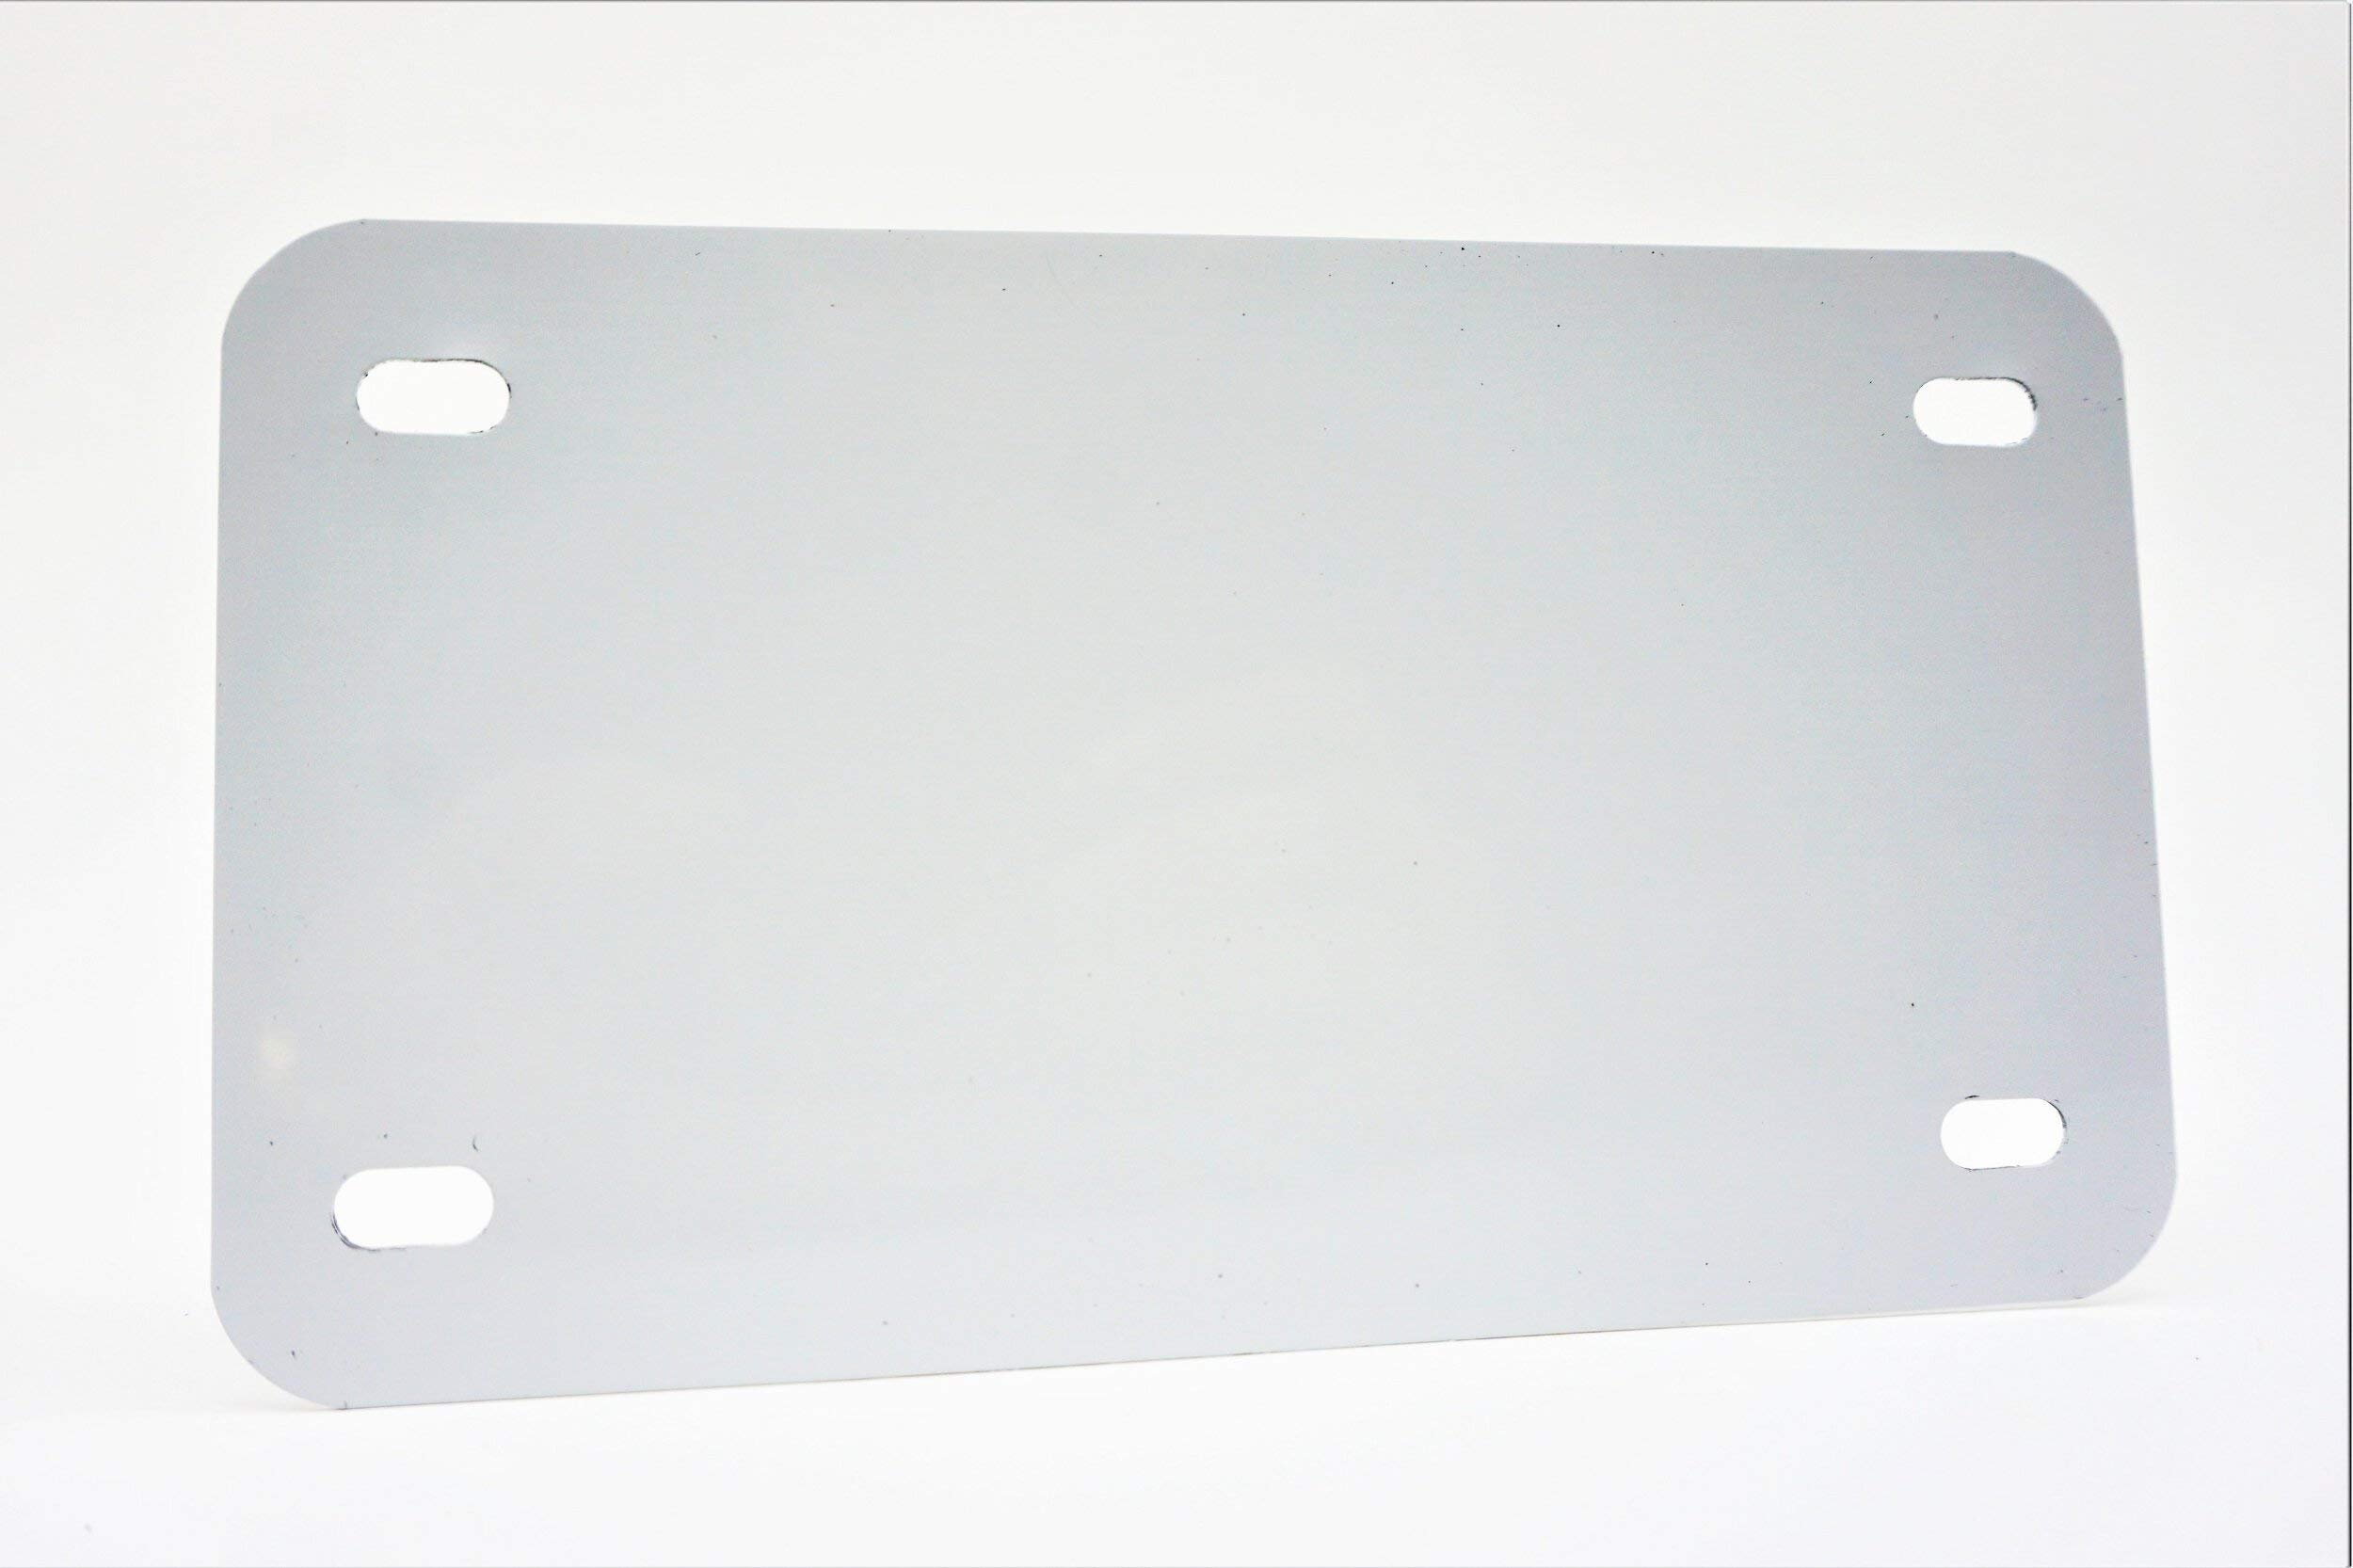 White - Motorcycle Anodized Aluminum License Plate Blank - 0.025/0.5mm - 4x7 by Partsapiens Corp.